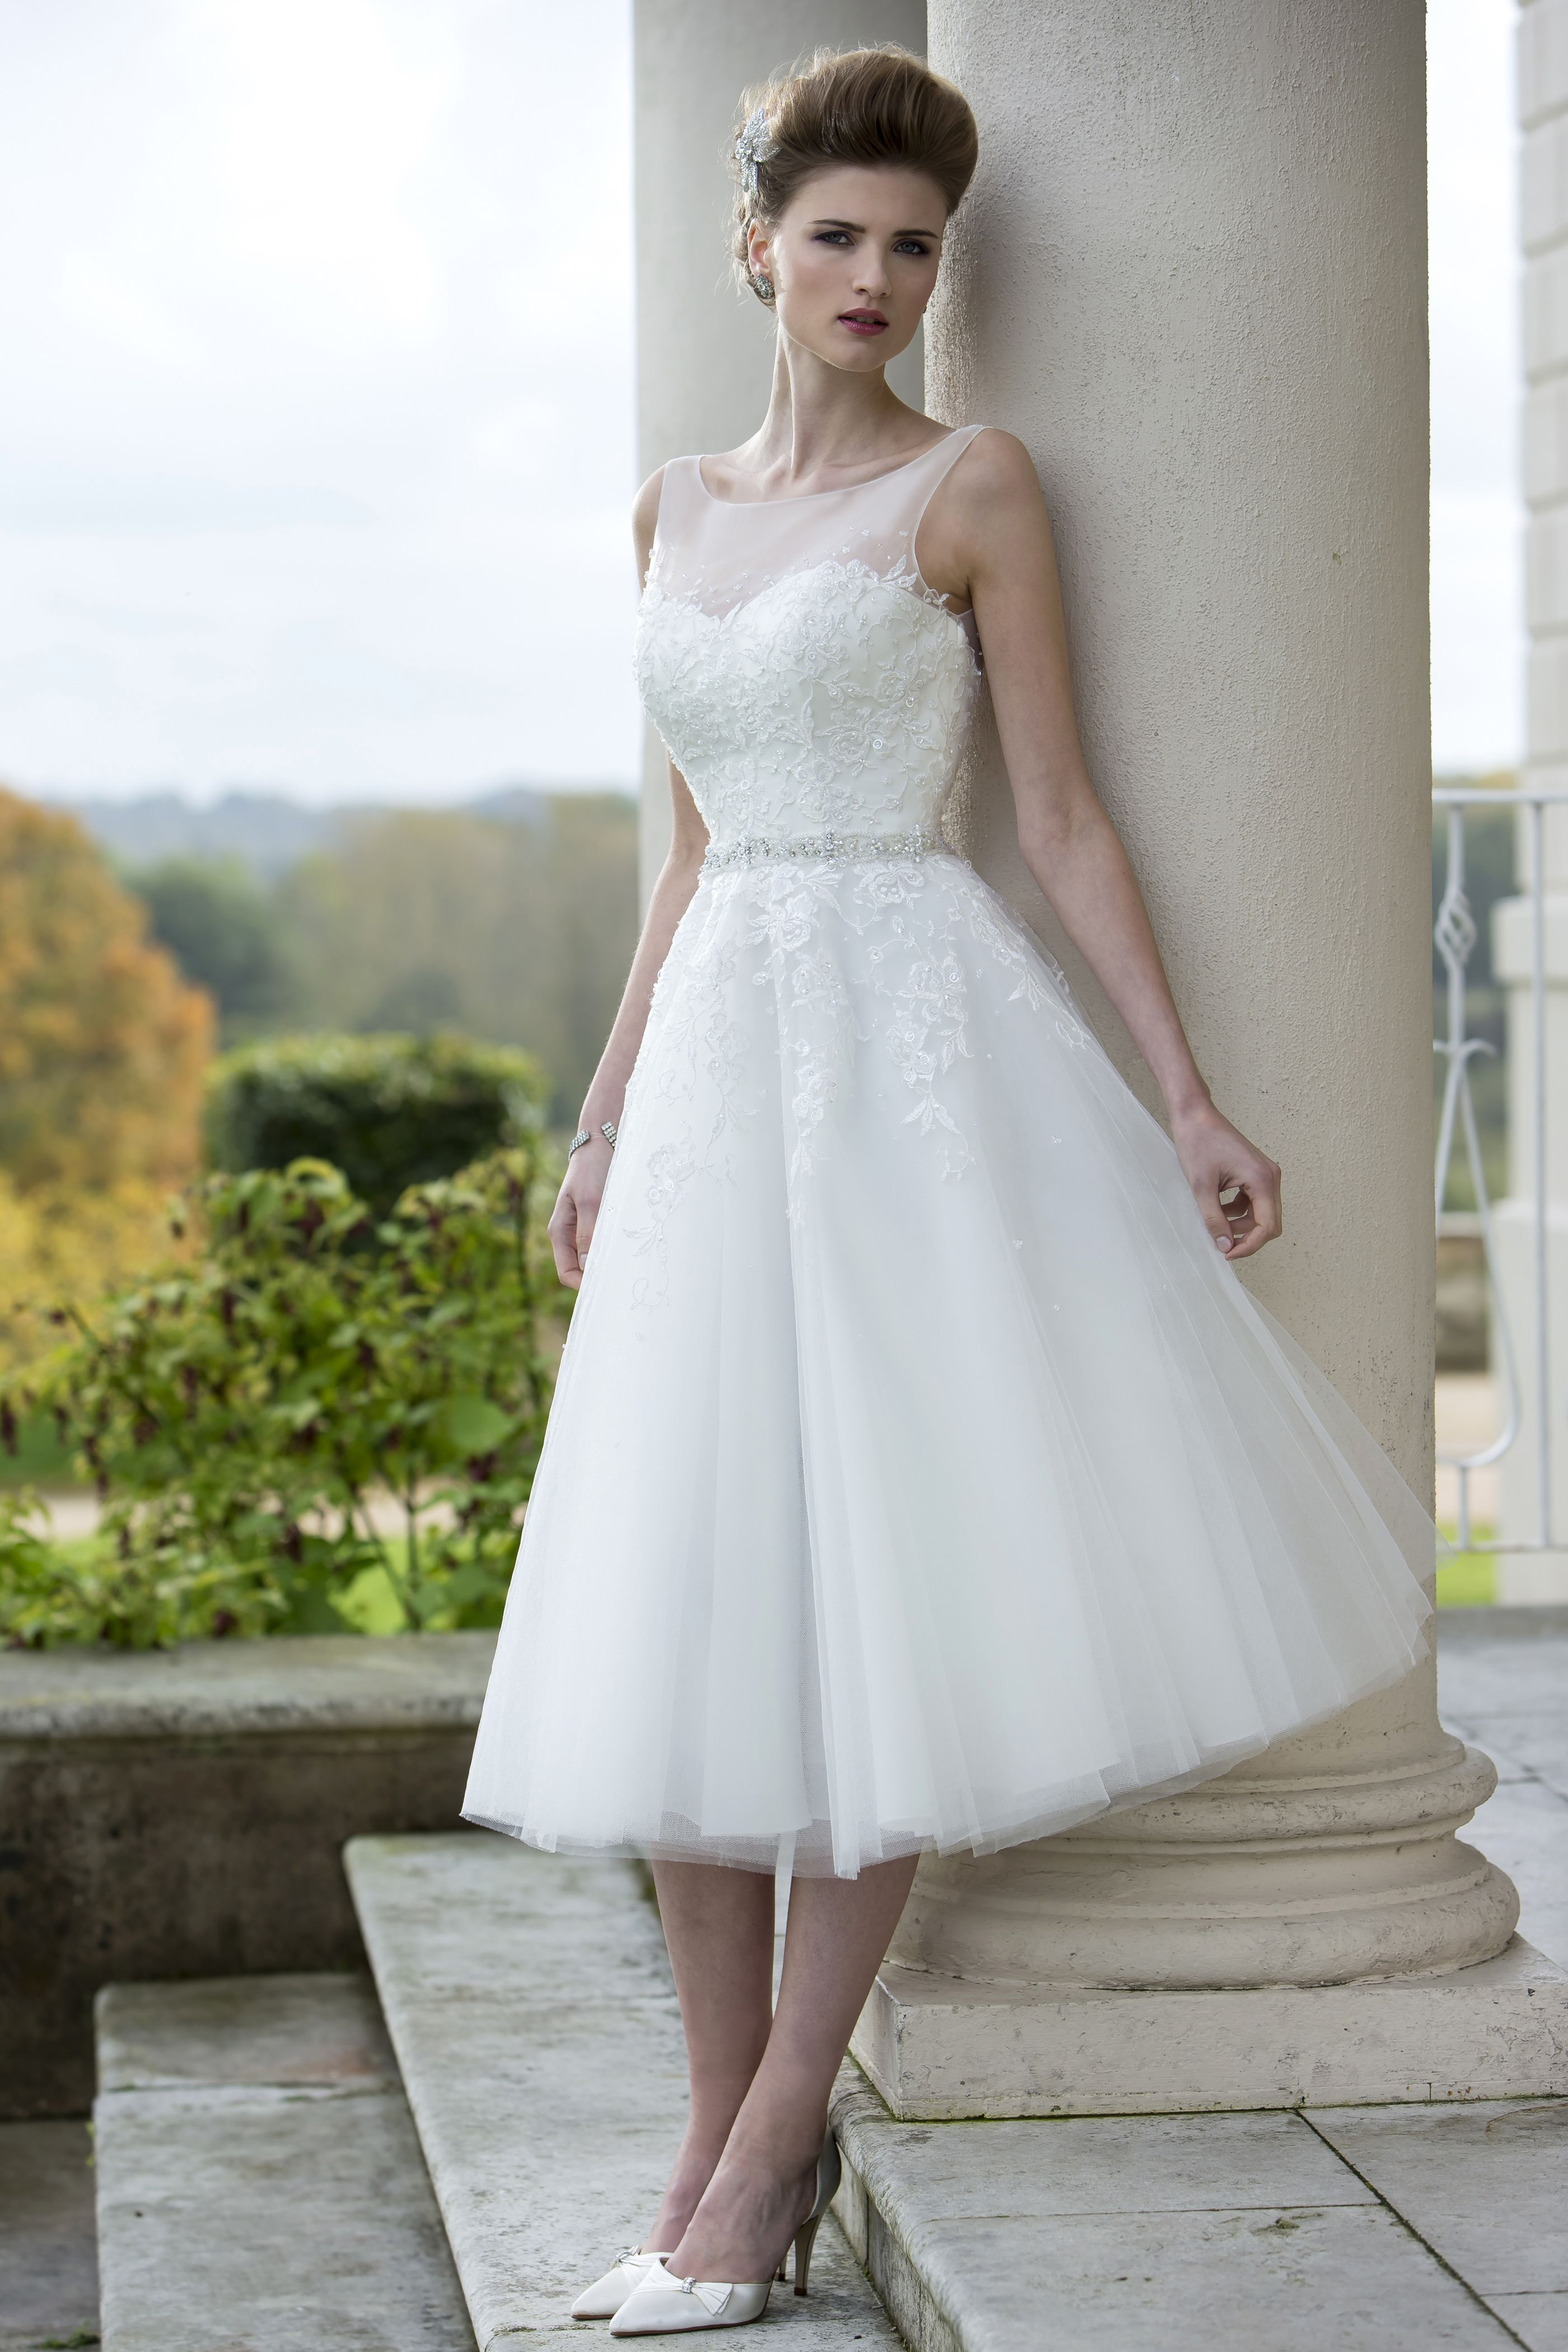 short retro wedding dresses uk%0A Alice  Brighton Belle collection by True Bride brings you this stunning bridal  gown for